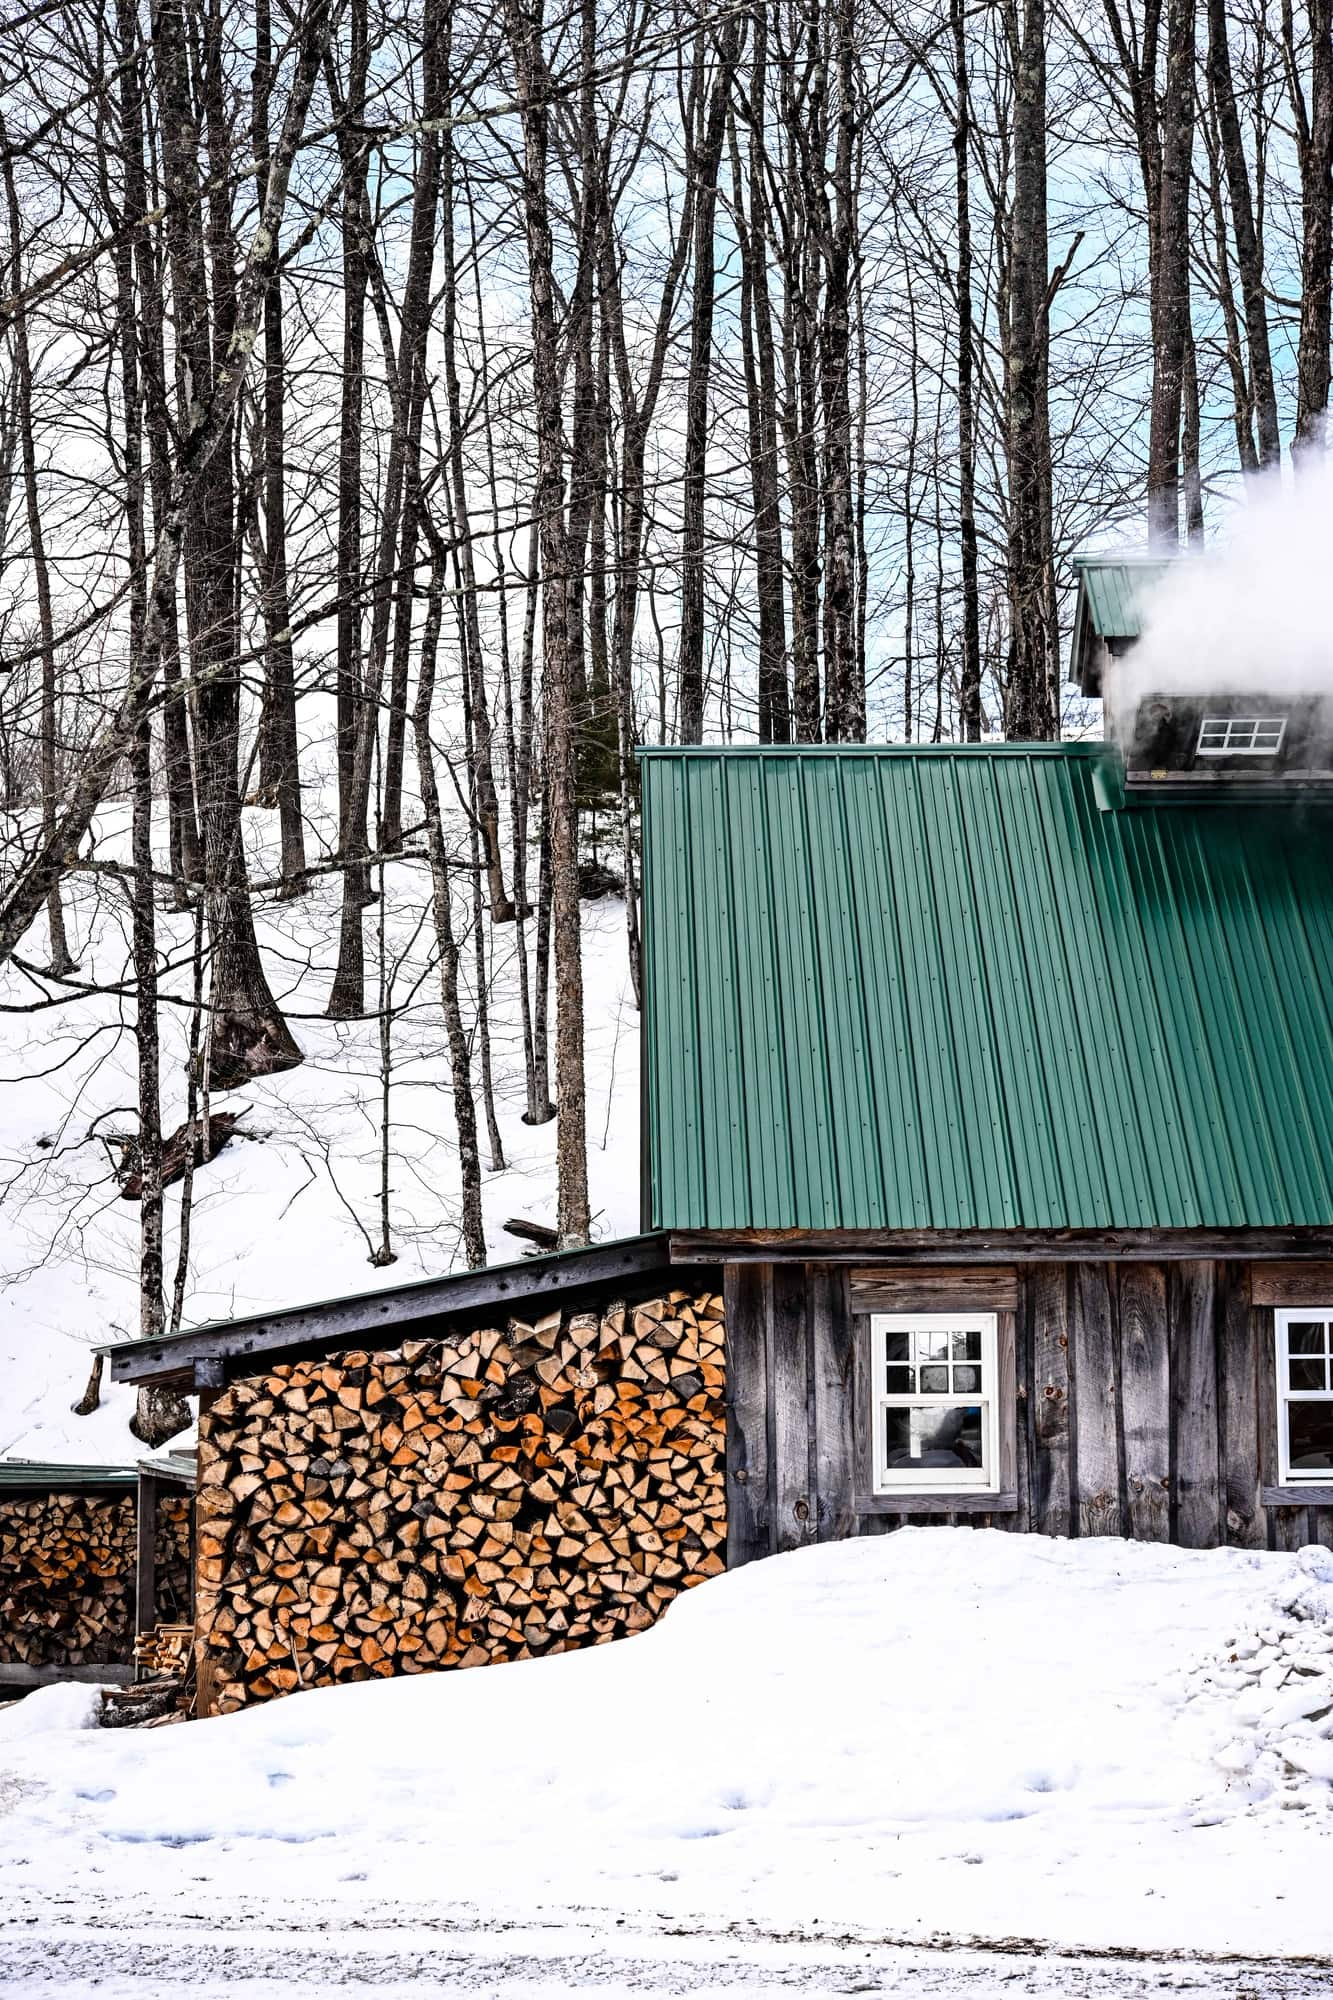 Side view of a Vermont Sugarhouse in winter with stack of wood and steam coming out of top of house